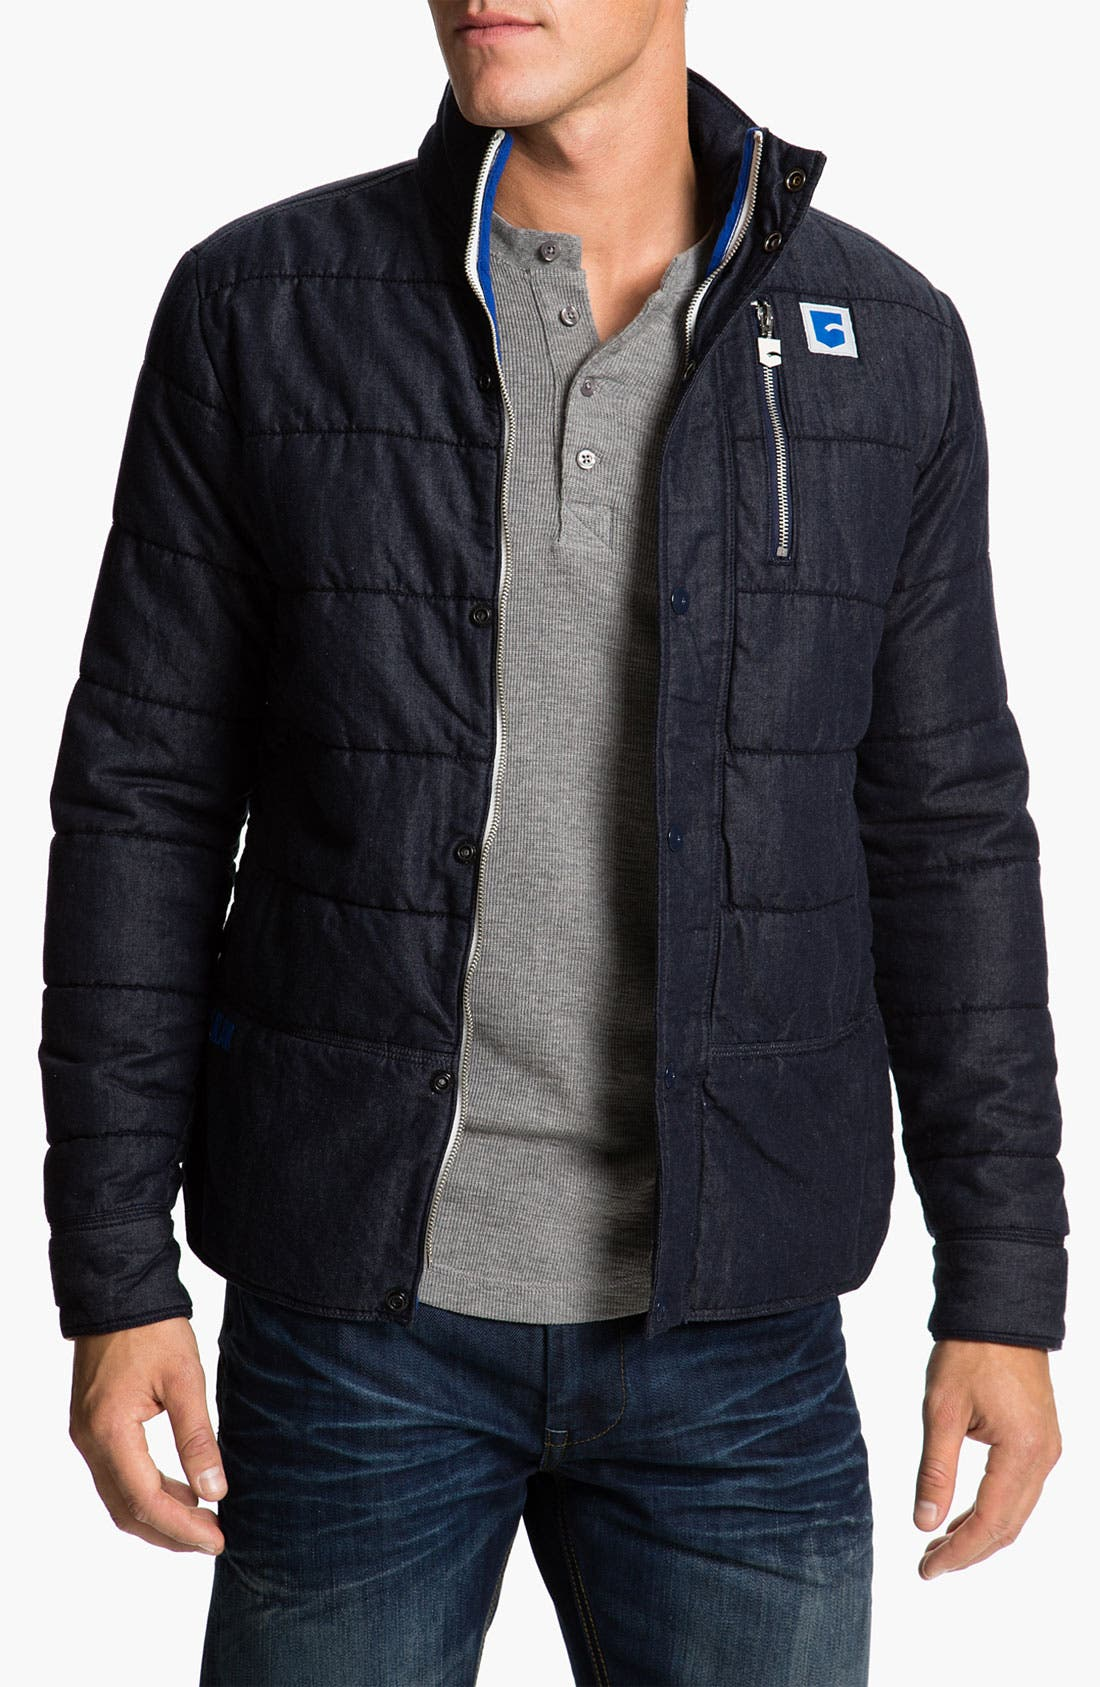 Alternate Image 1 Selected - G-Star Raw 'Park' Quilted Jacket